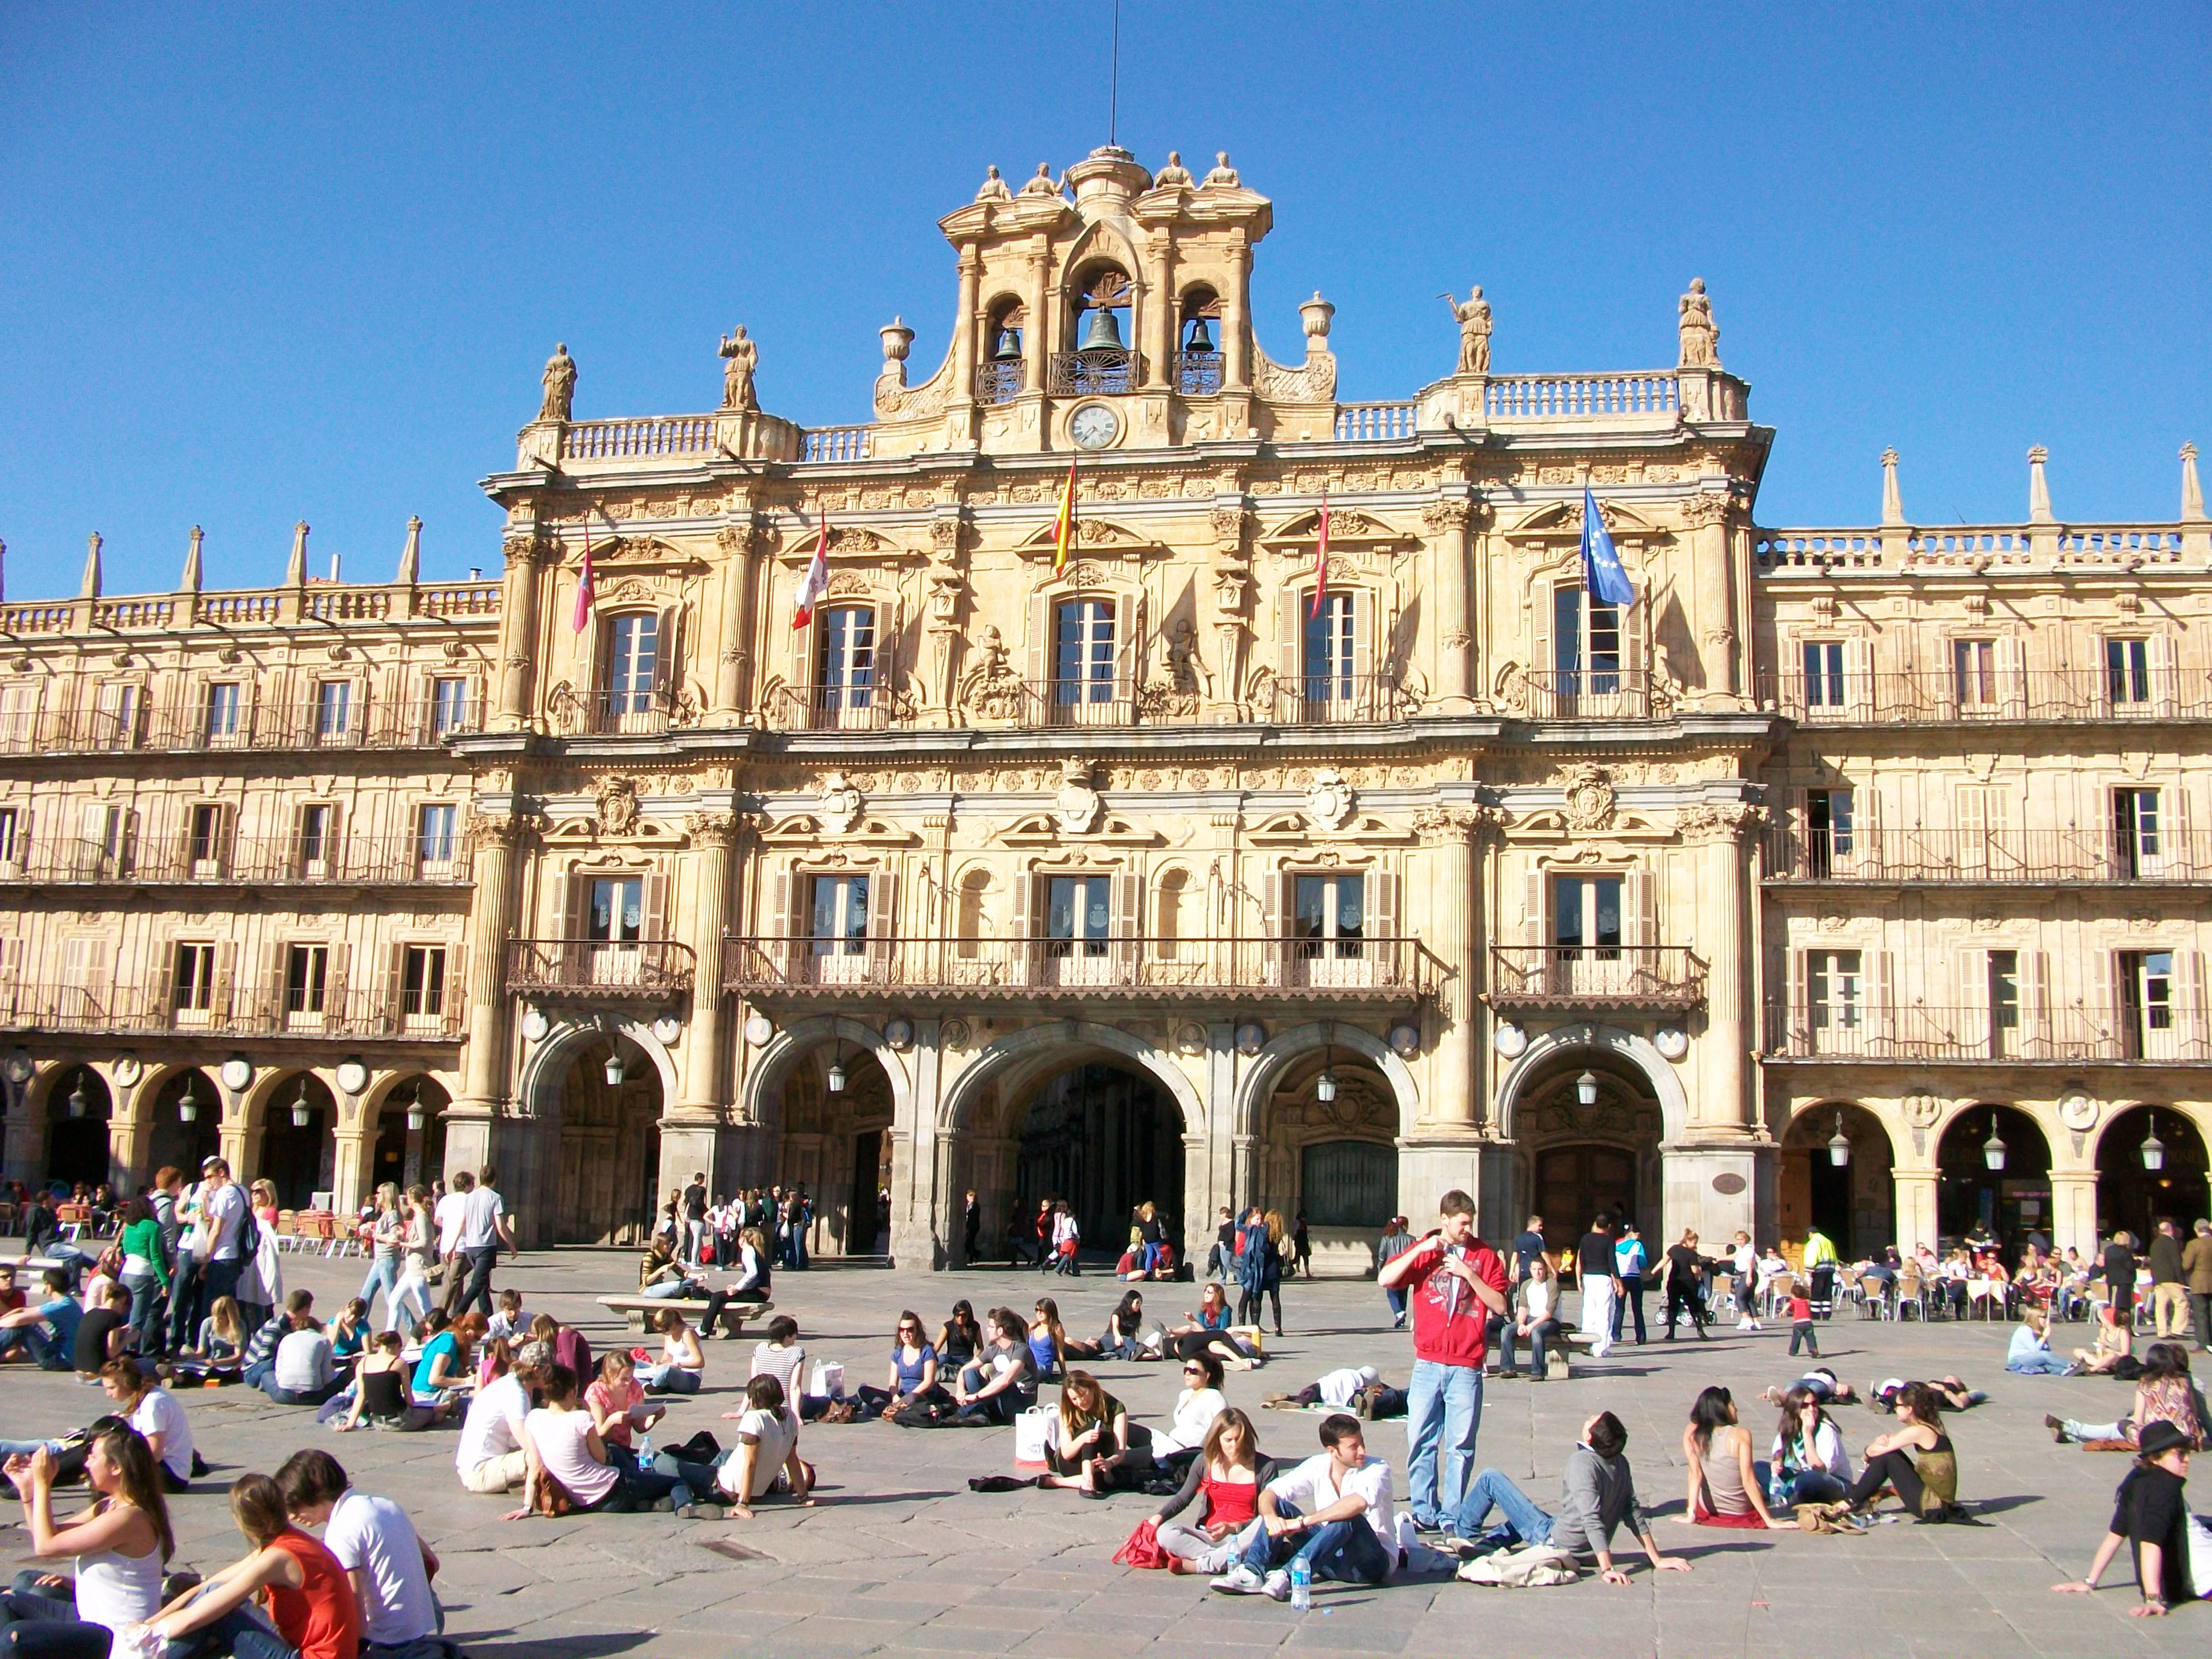 File:Plaza Mayor, Salamanca.JPG - Wikipedia